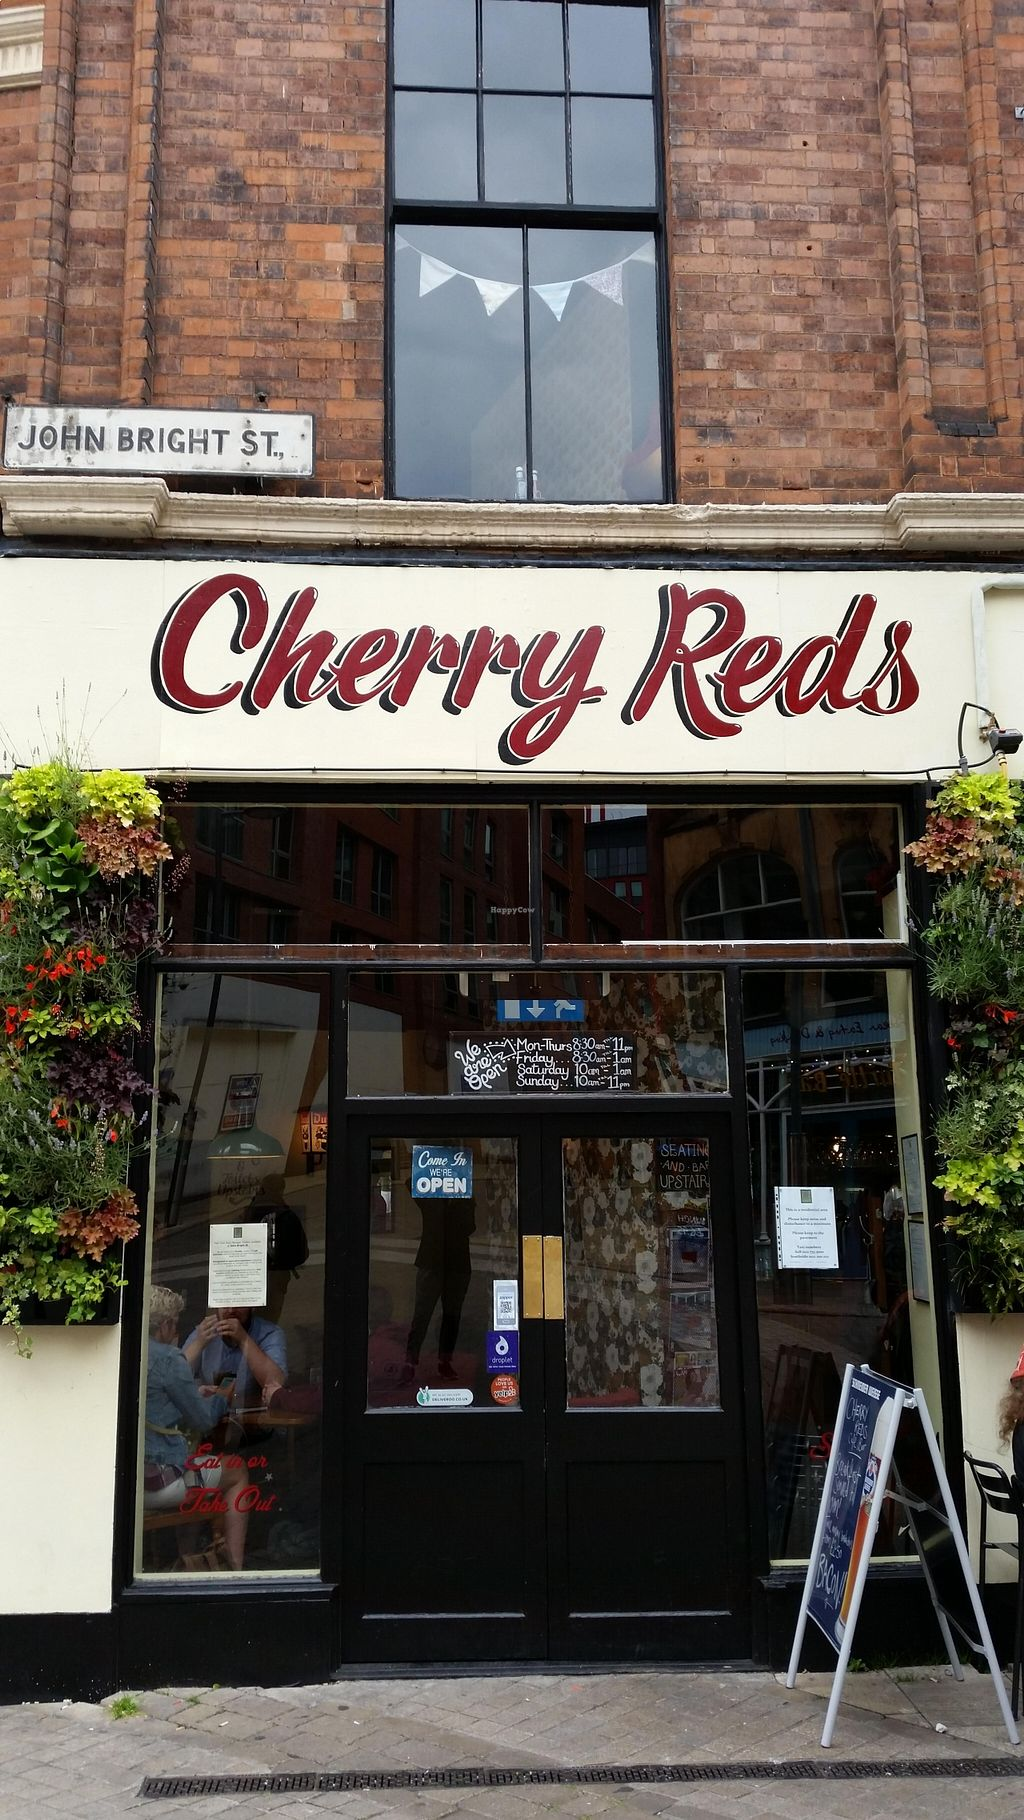 """Photo of Cherry Reds Cafe and Bar  by <a href=""""/members/profile/konlish"""">konlish</a> <br/>Outside <br/> August 18, 2015  - <a href='/contact/abuse/image/47425/114062'>Report</a>"""